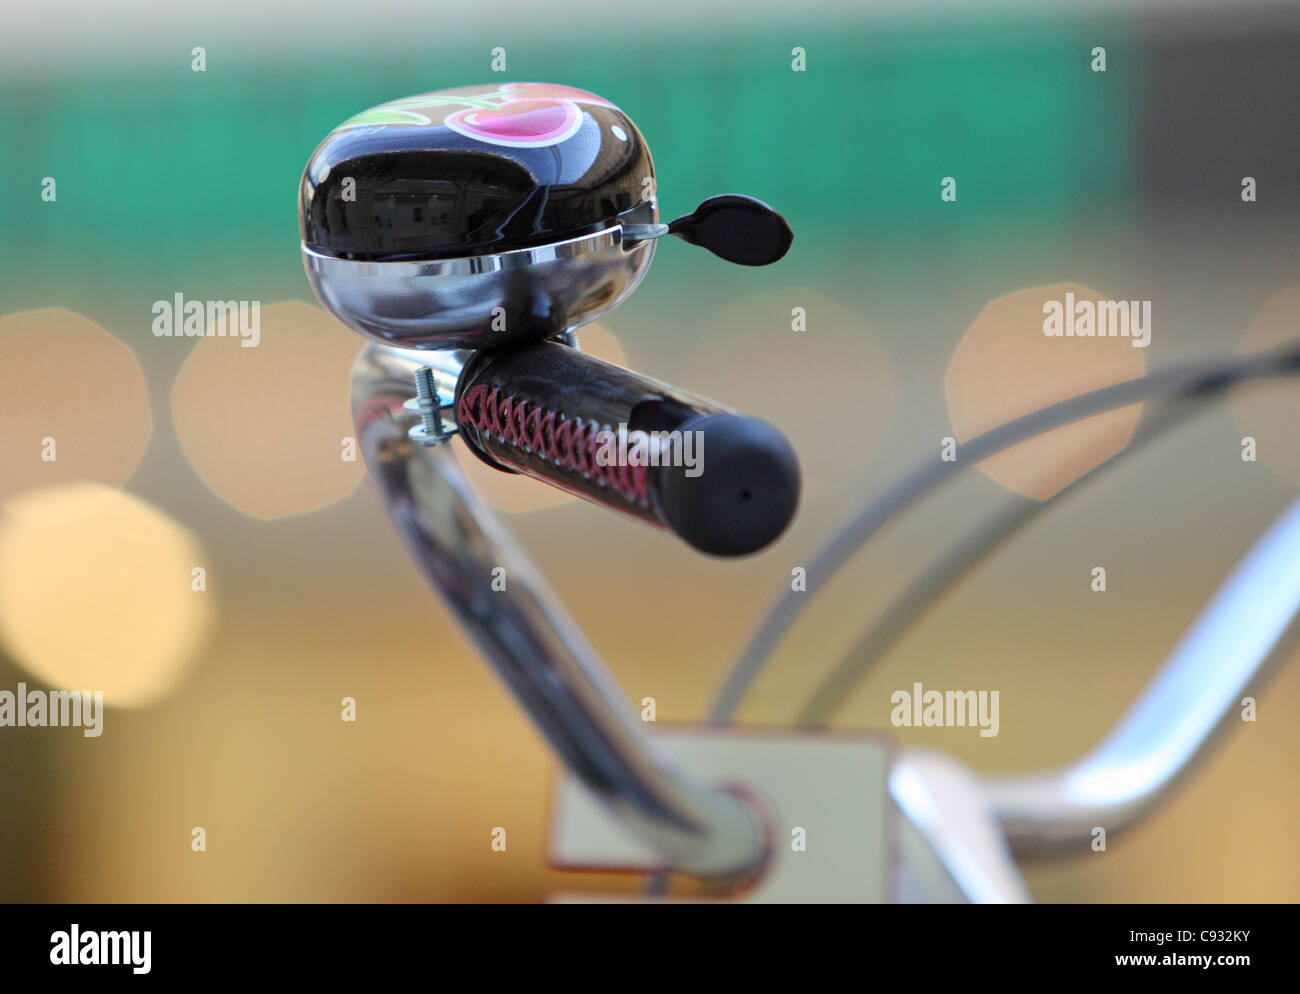 Close up of bicycle bell on handlebars - Stock Image